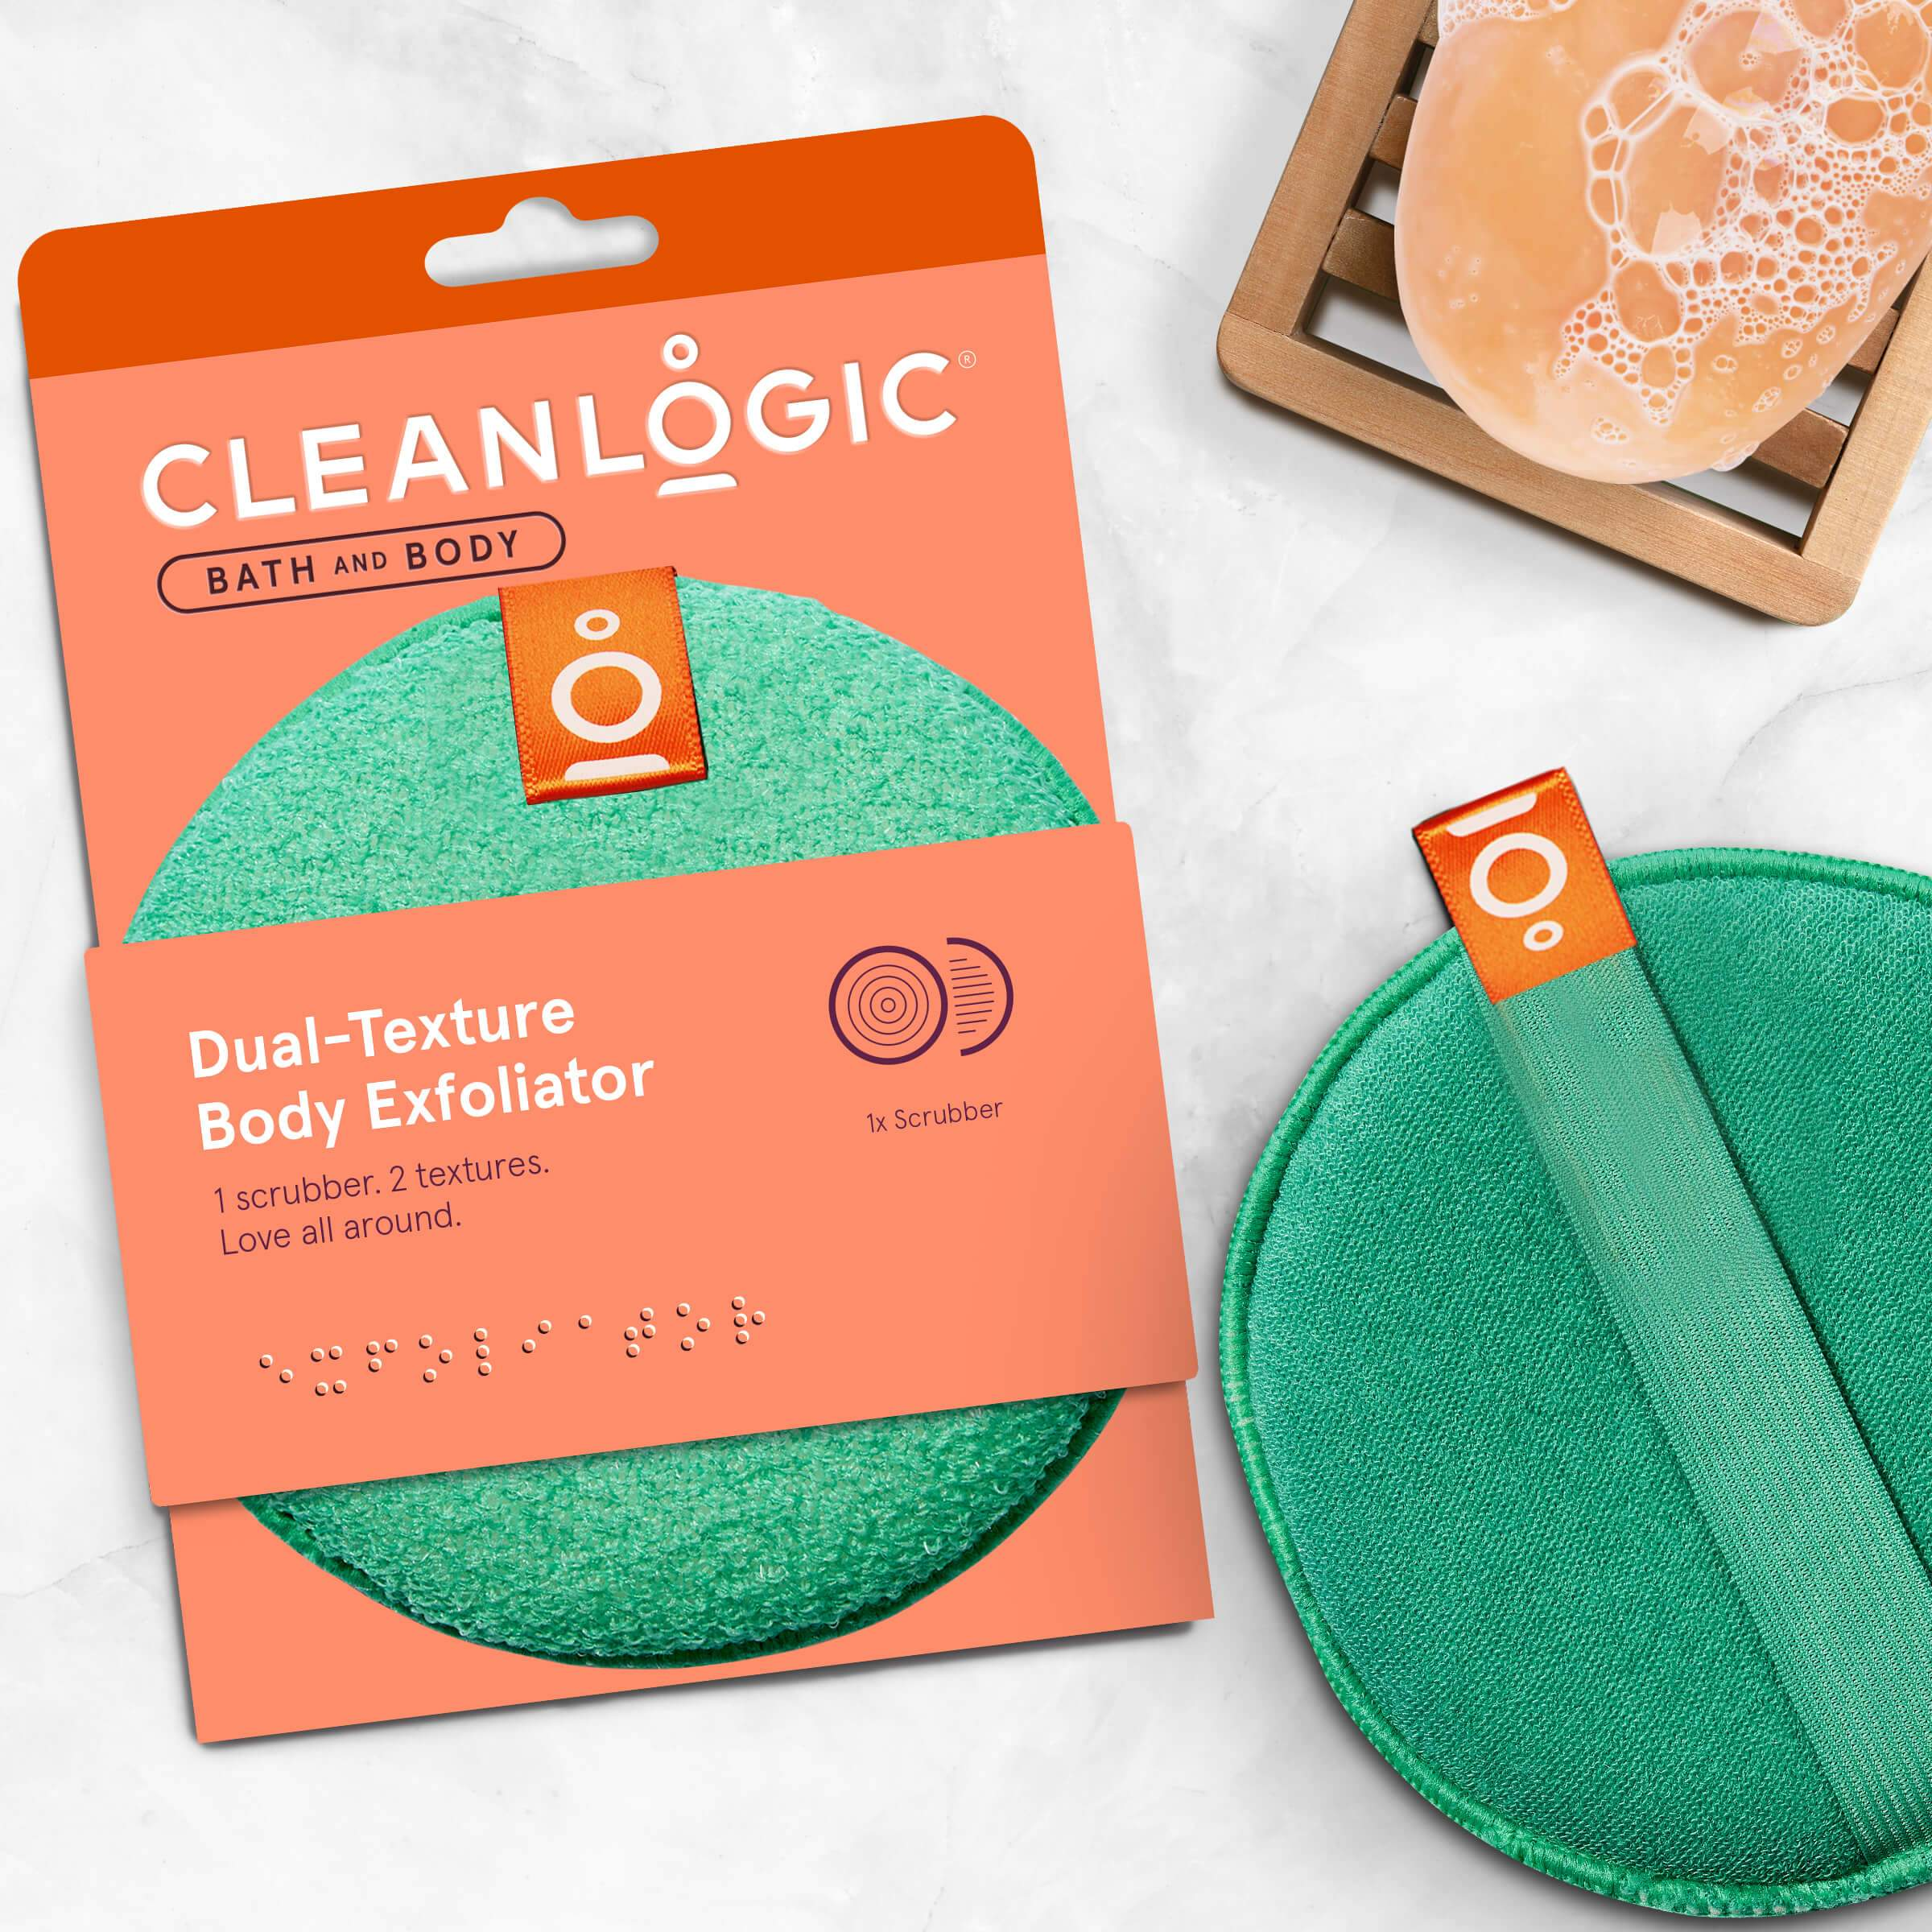 Cleanlogic Bath and Body Dual-Texture Body Exfoliator